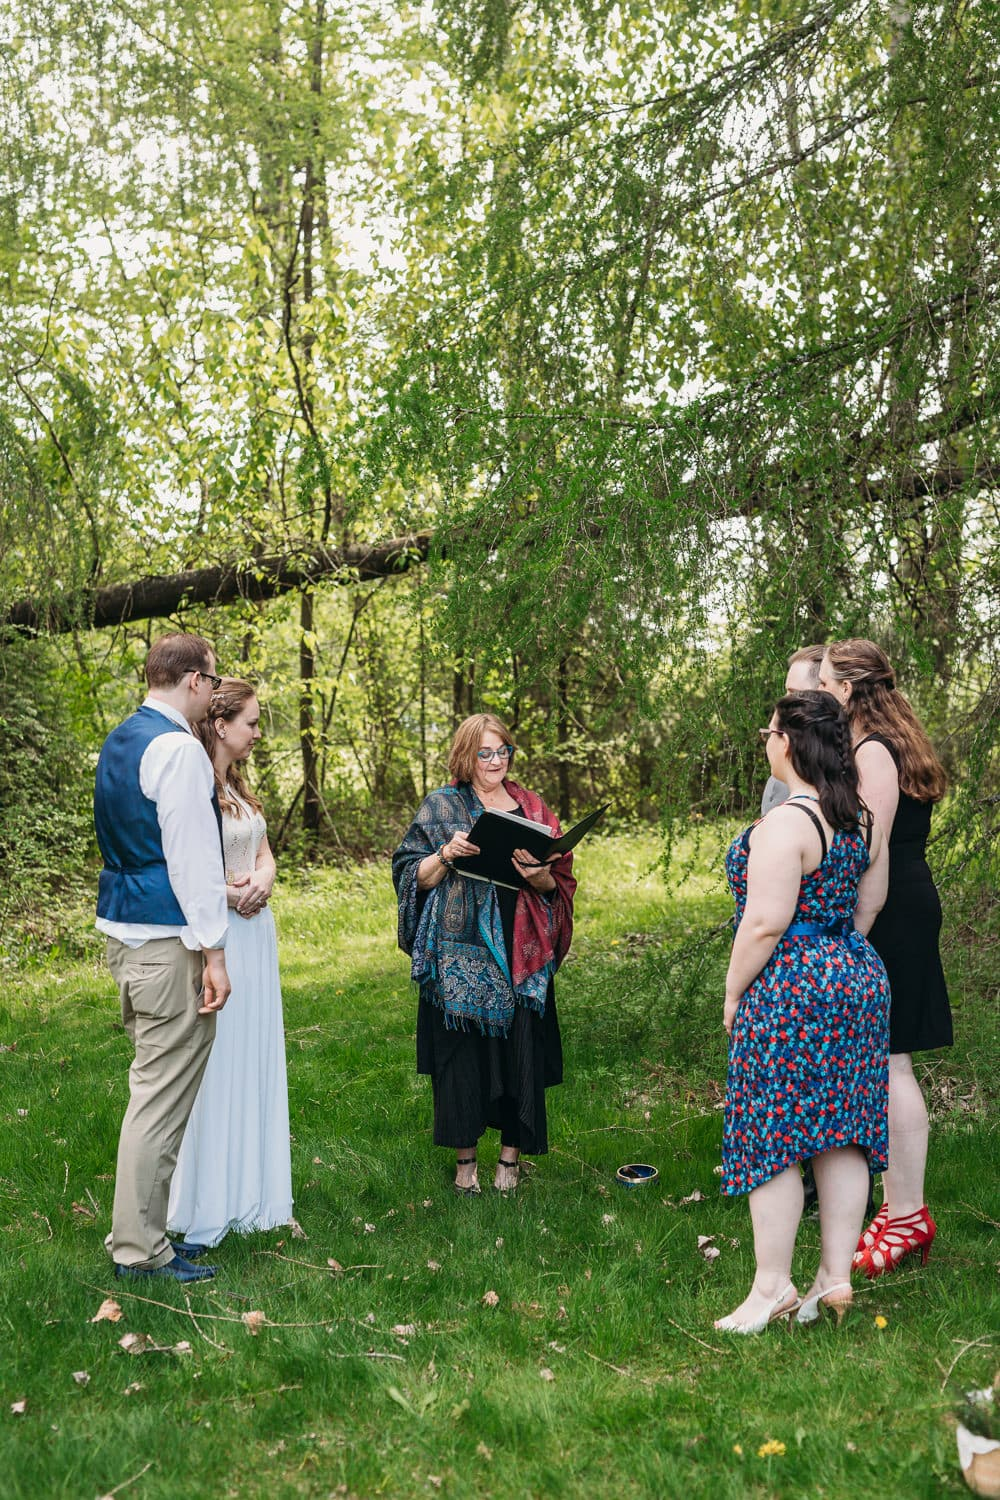 campbell valley park wedding ceremony with life threads celebrant